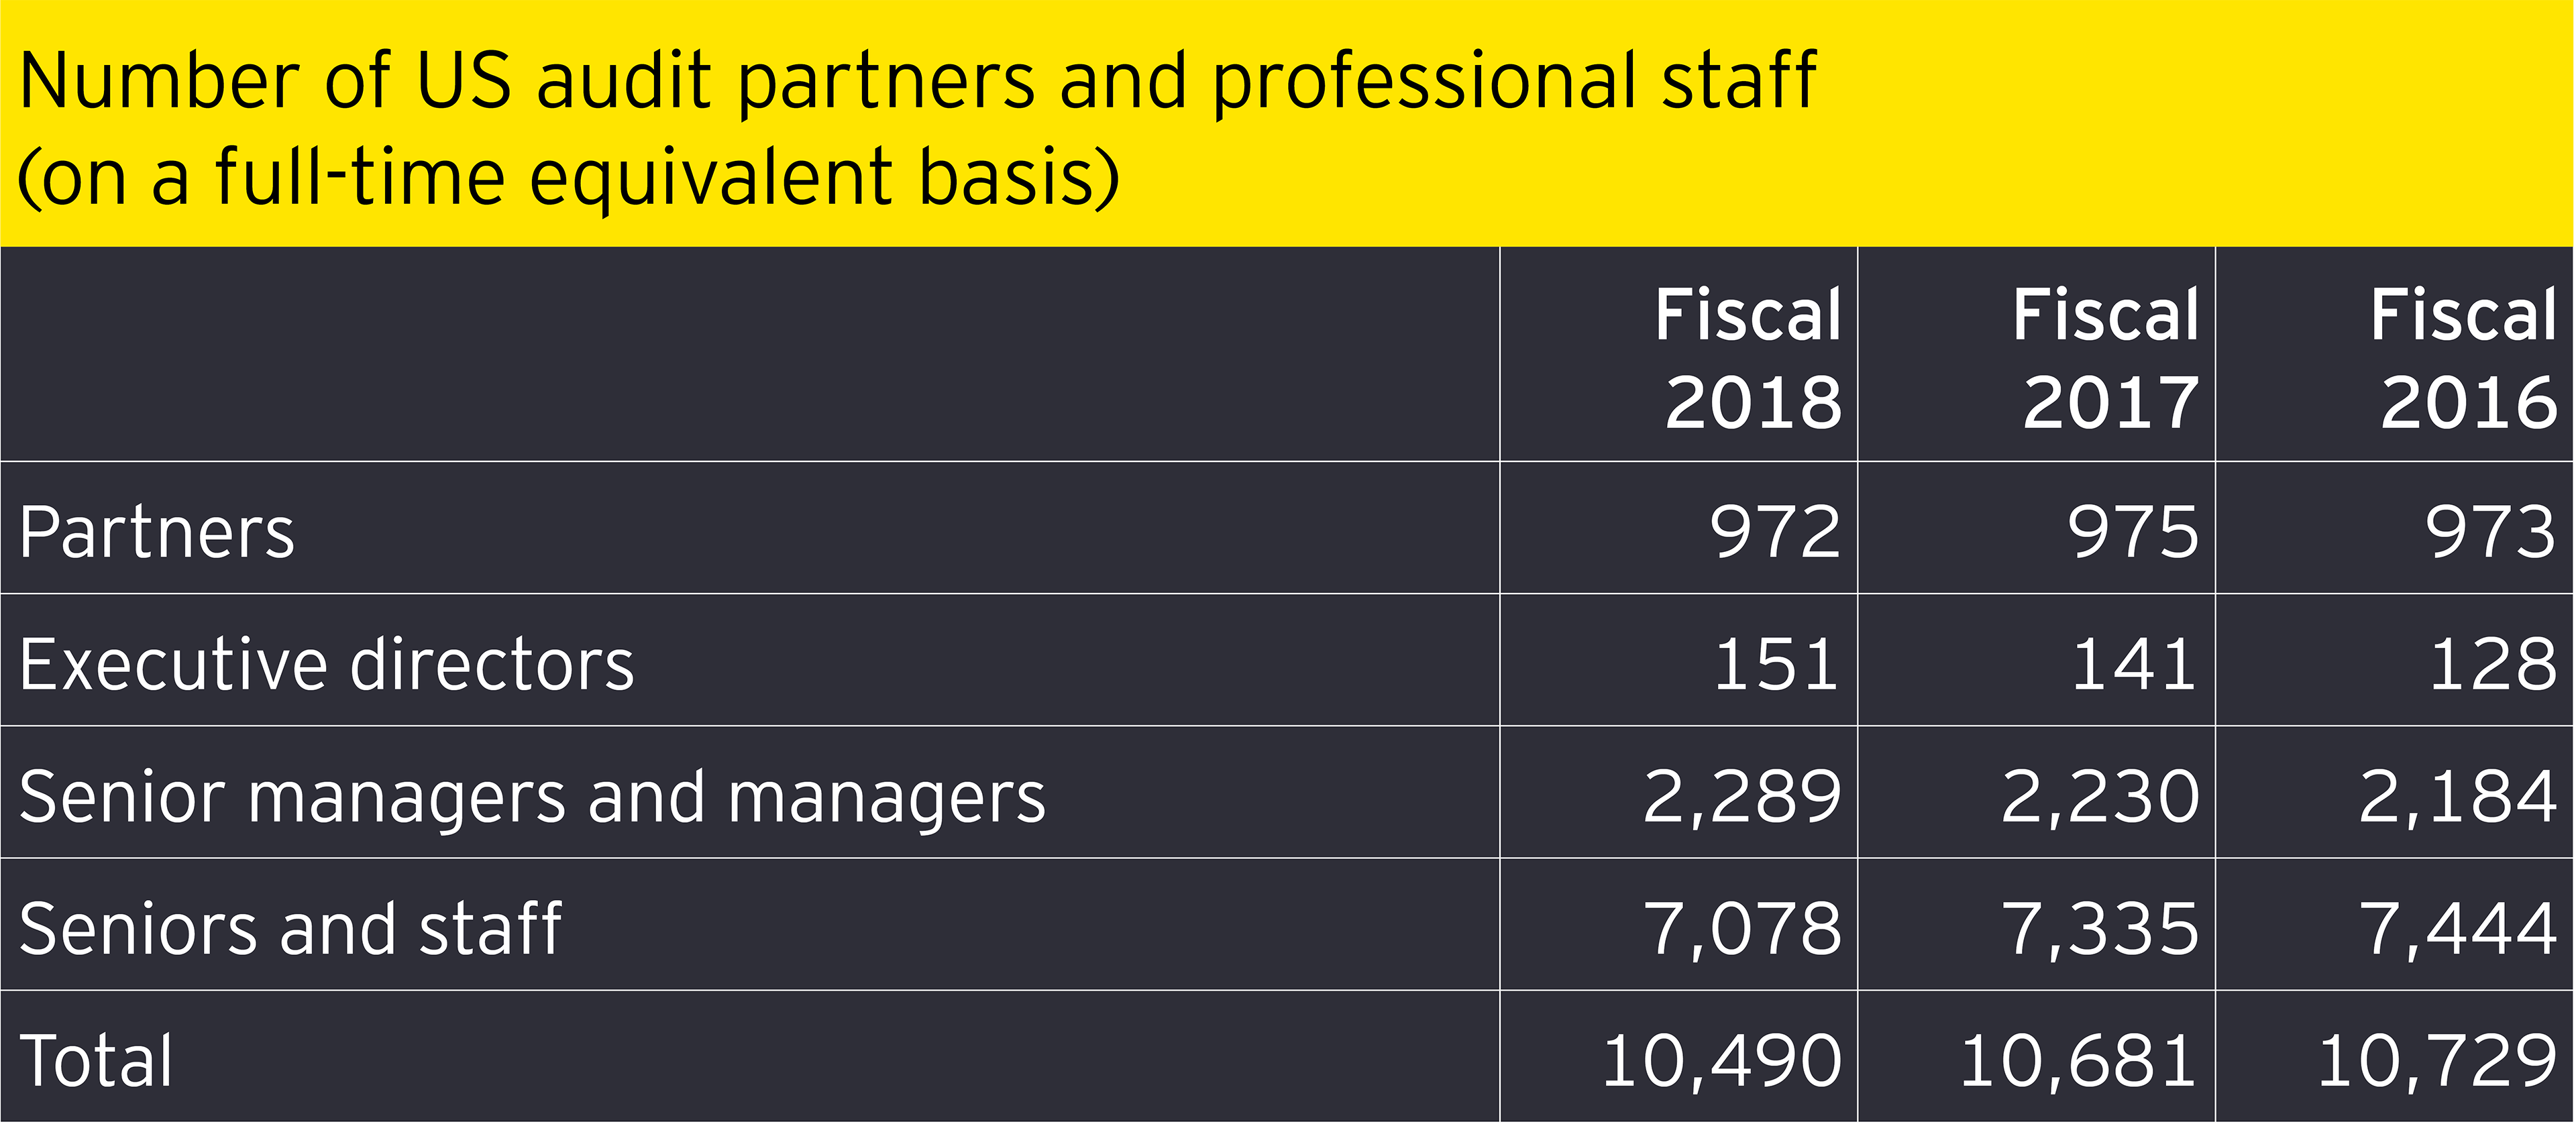 Number of us audit partners and professional staff